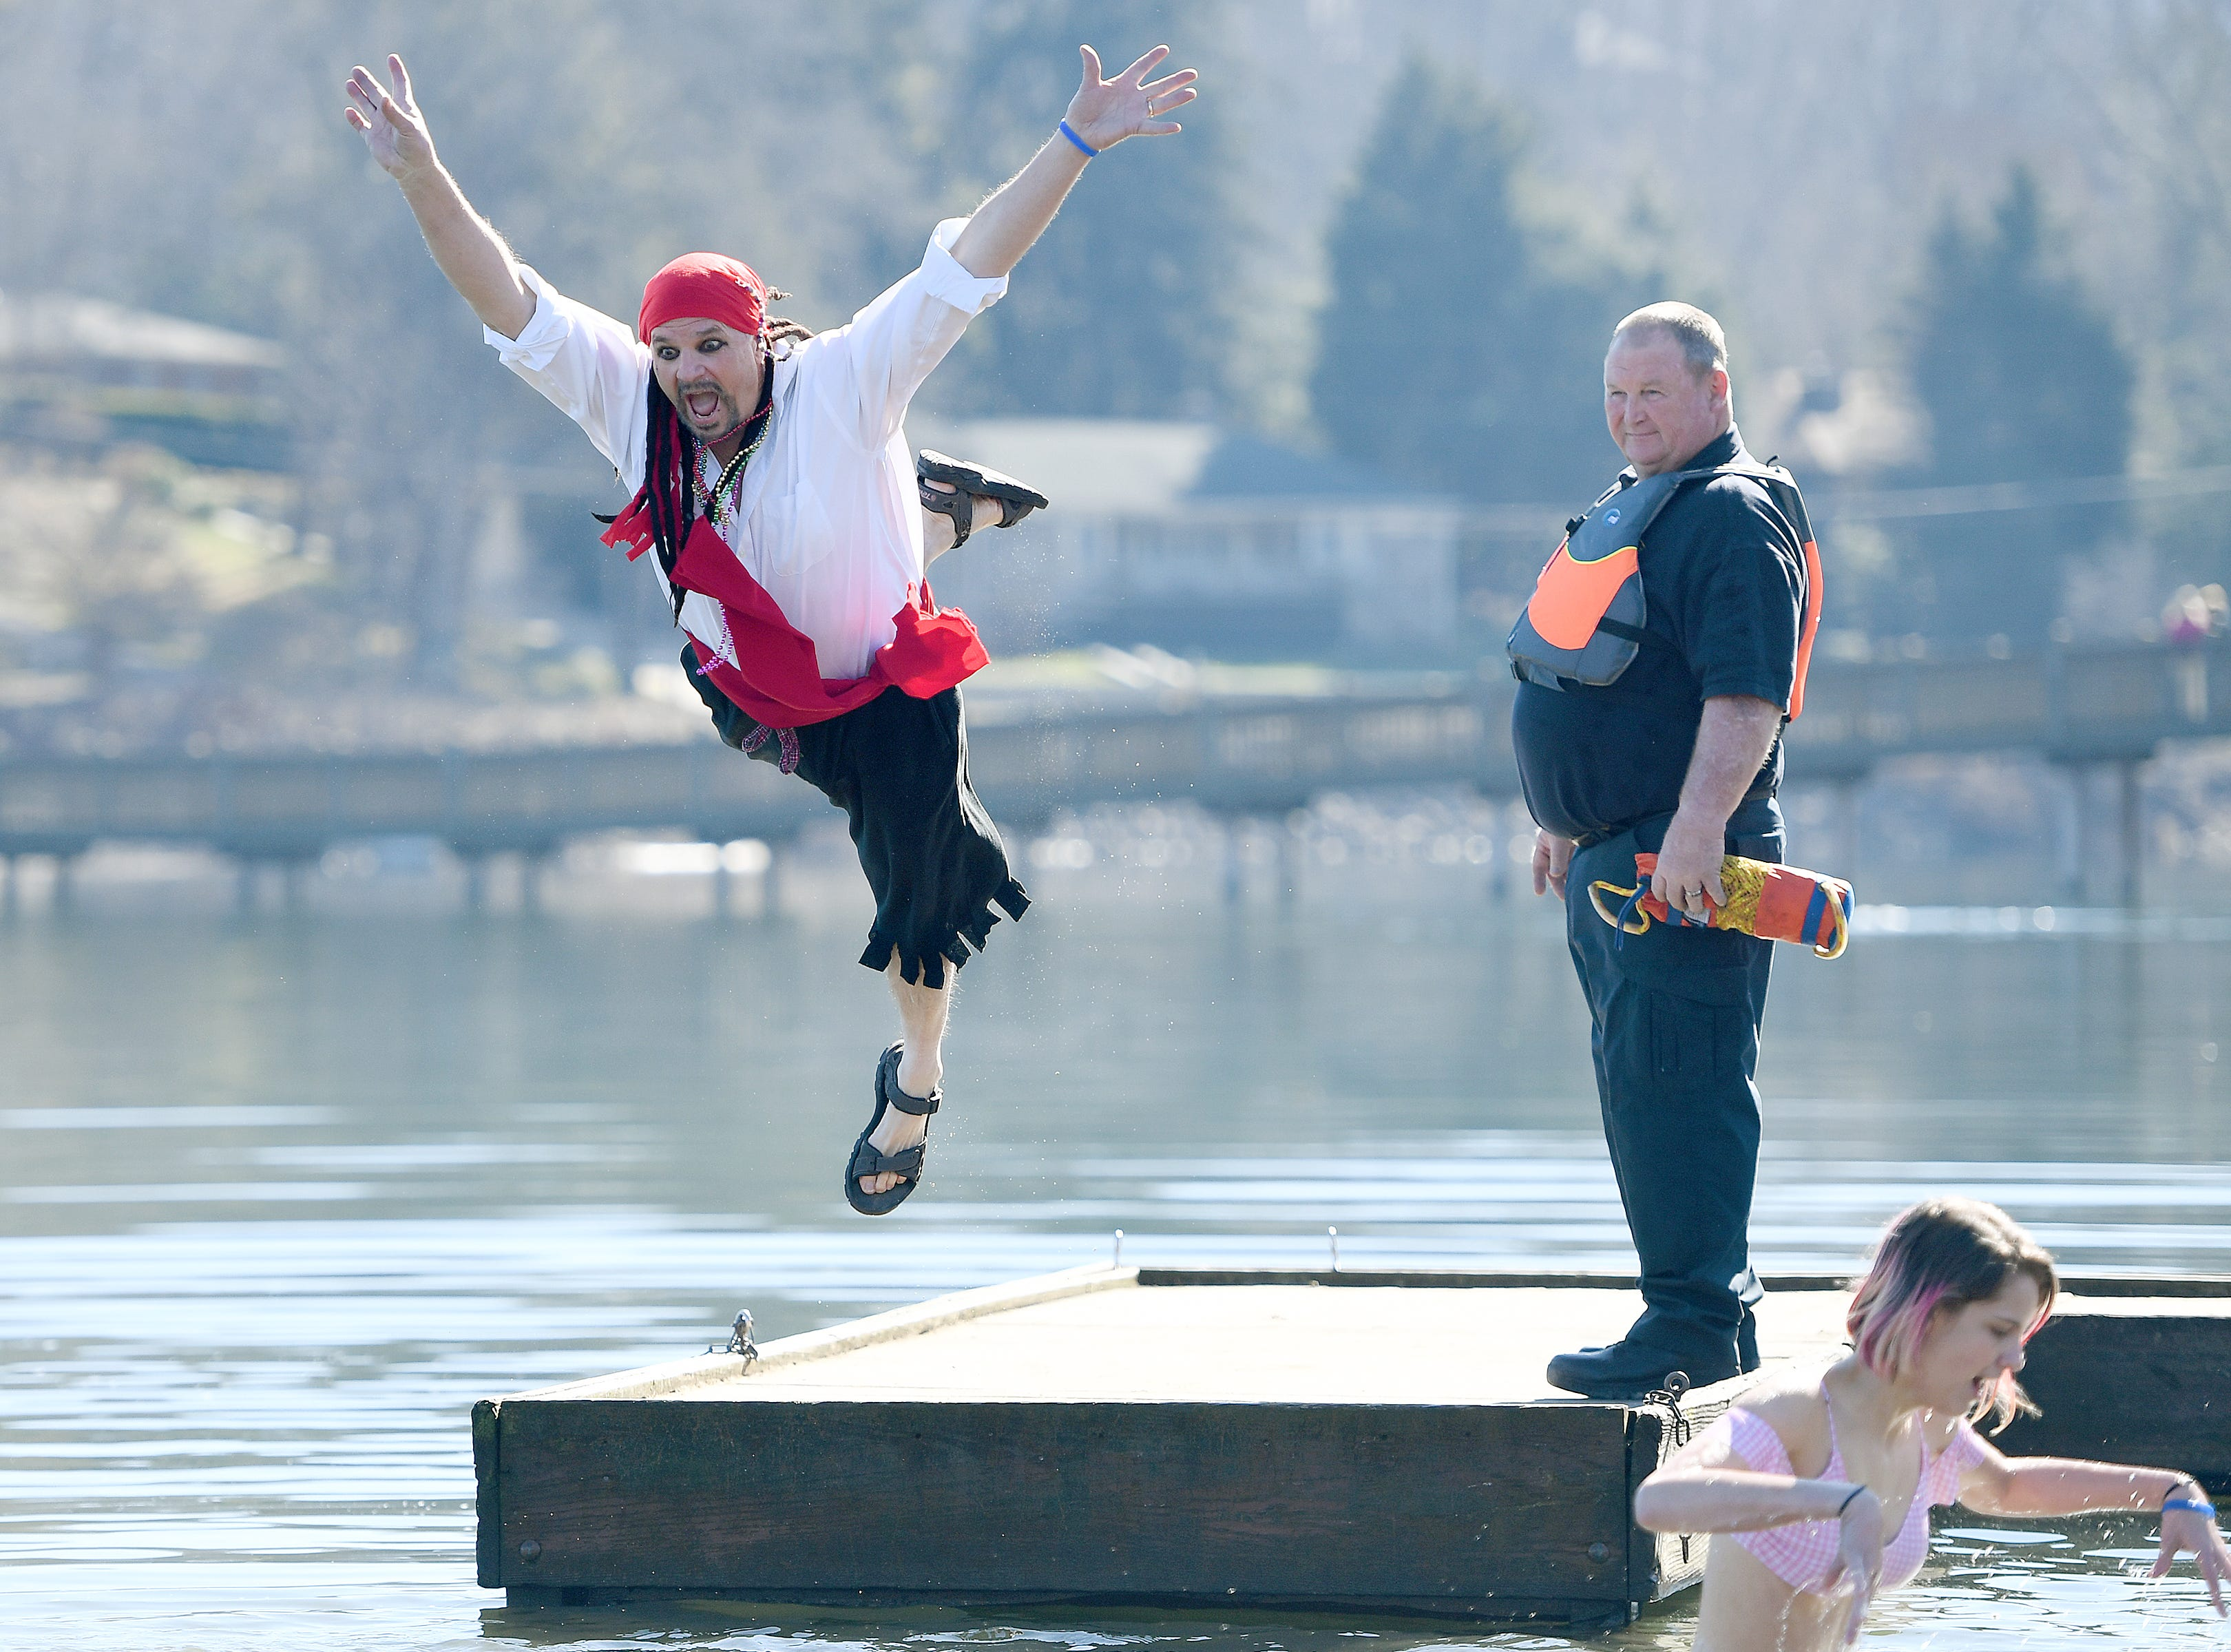 Steve Winchester makes a leap into the chilly waters of Lake Junaluska during the 7th Annual Plunge at Lake Junaluska Conference and Retreat Center on Feb. 2, 2019. The event raised more than $30,000 for Kids in the Creek and environmental education.